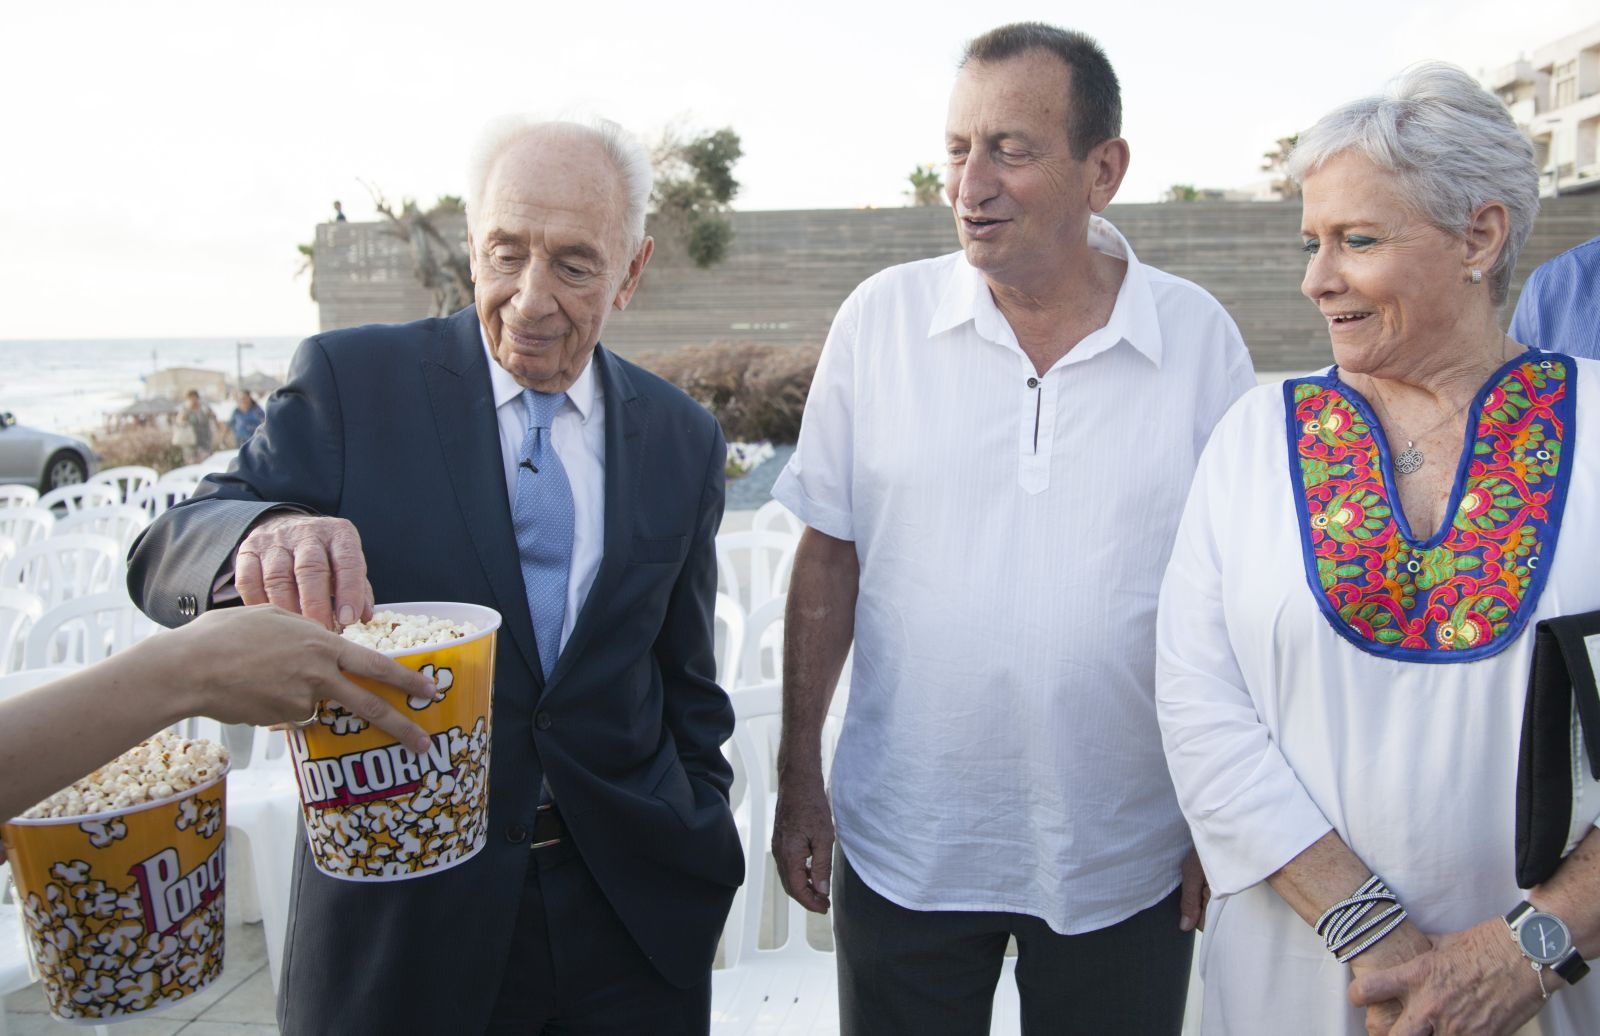 """Former President Shimon Peres and Tel Aviv Mayor Ron Huldai hosted about 1,000 people at """"White Night at the Peres Center for Peace,"""" opening the evening with popcorn and a movie on the beach in Jaffa. Photo courtesy of Peres Center for Peace"""